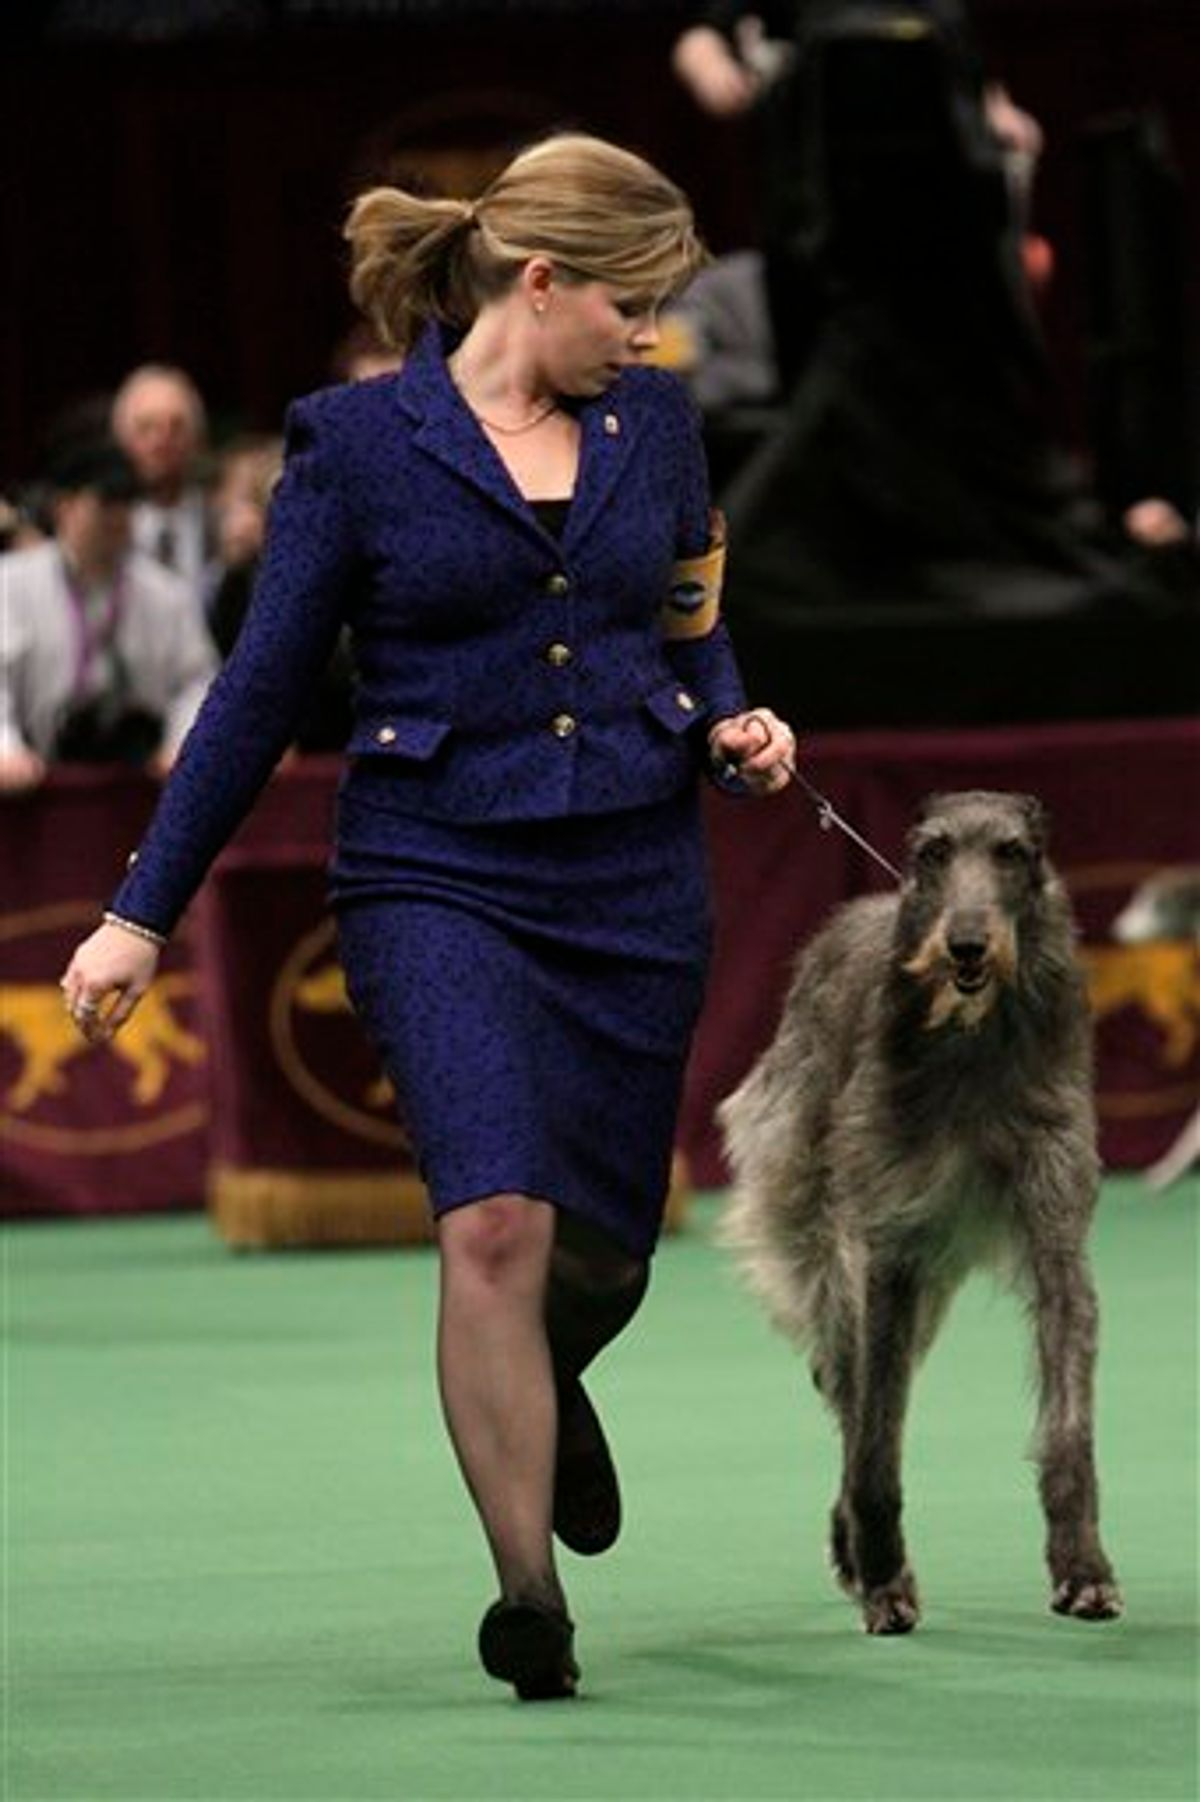 Scottish deerhound Foxcliffe Hickory Wind is led in the ring during competition at the 135th Westminster Kennel Club Dog Show on Monday, Feb. 14, 2011, at Madison Square Garden in New York. The dog won the hound division. (AP Photo/Mary Altaffer) (AP)